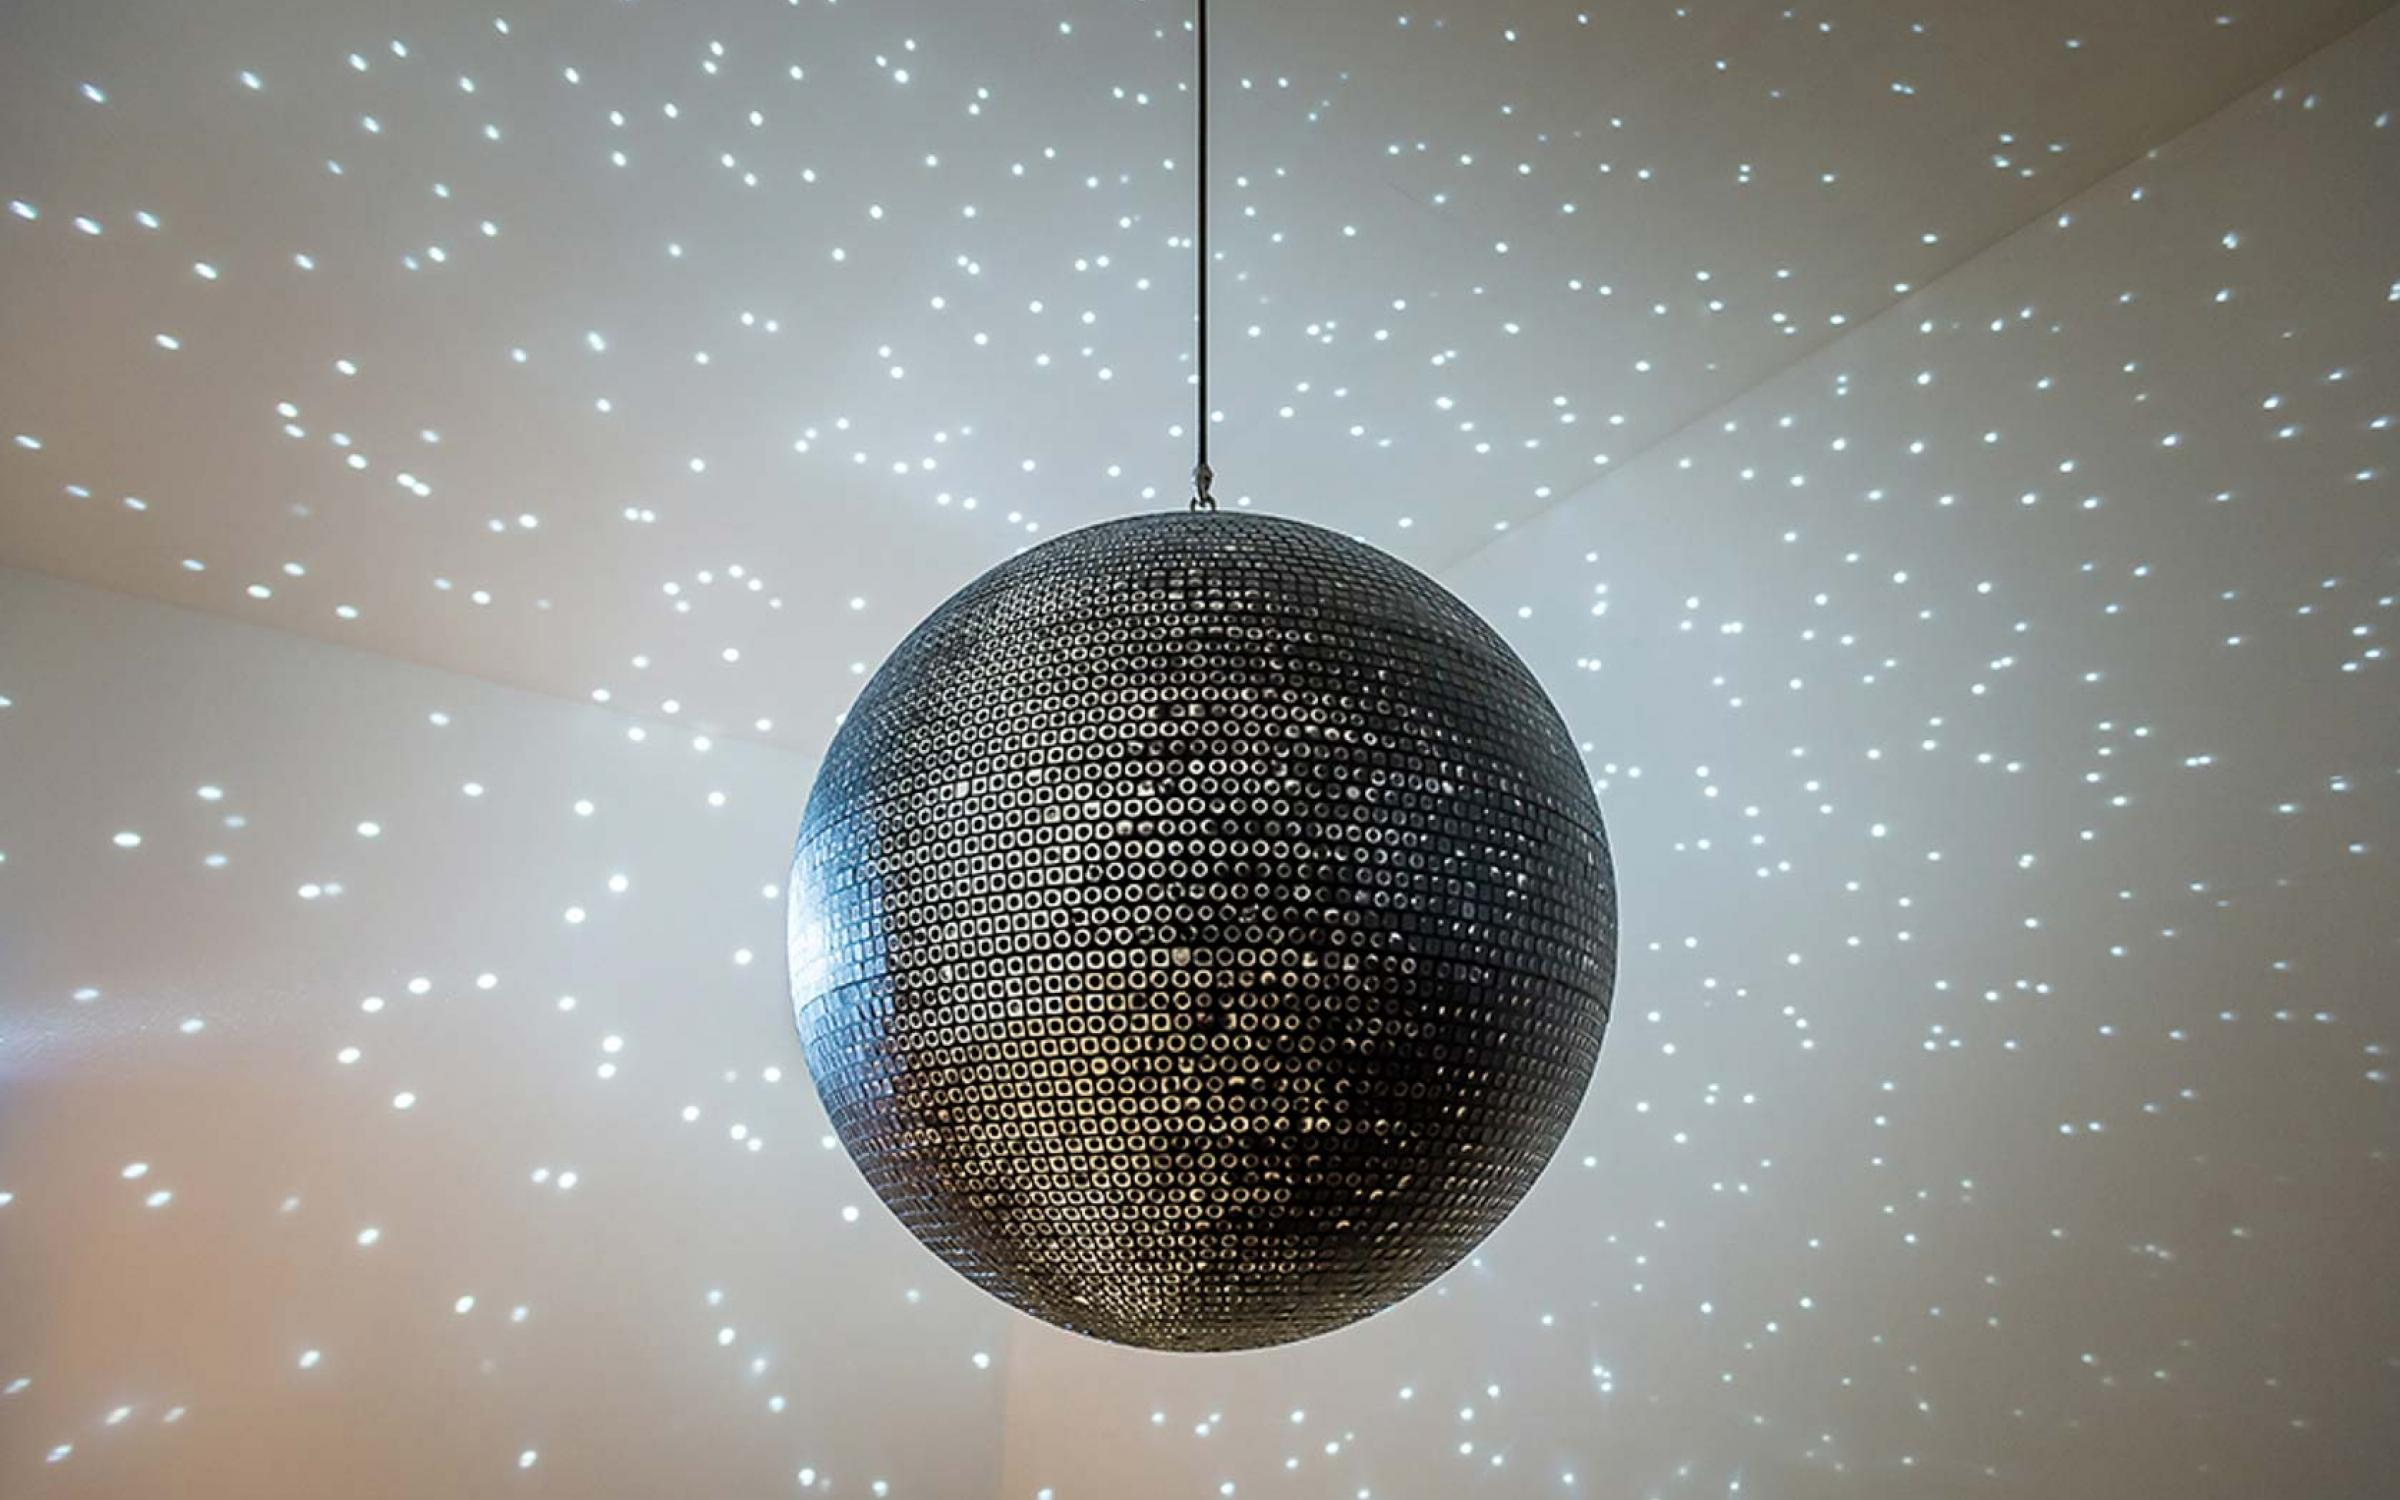 Katie Paterson (Scottish, born 1981), Totality, 2016, printed mirrorball, motor, and lights, 85 cm in diameter, photo © Ben Blackall, courtesy of the Lowry